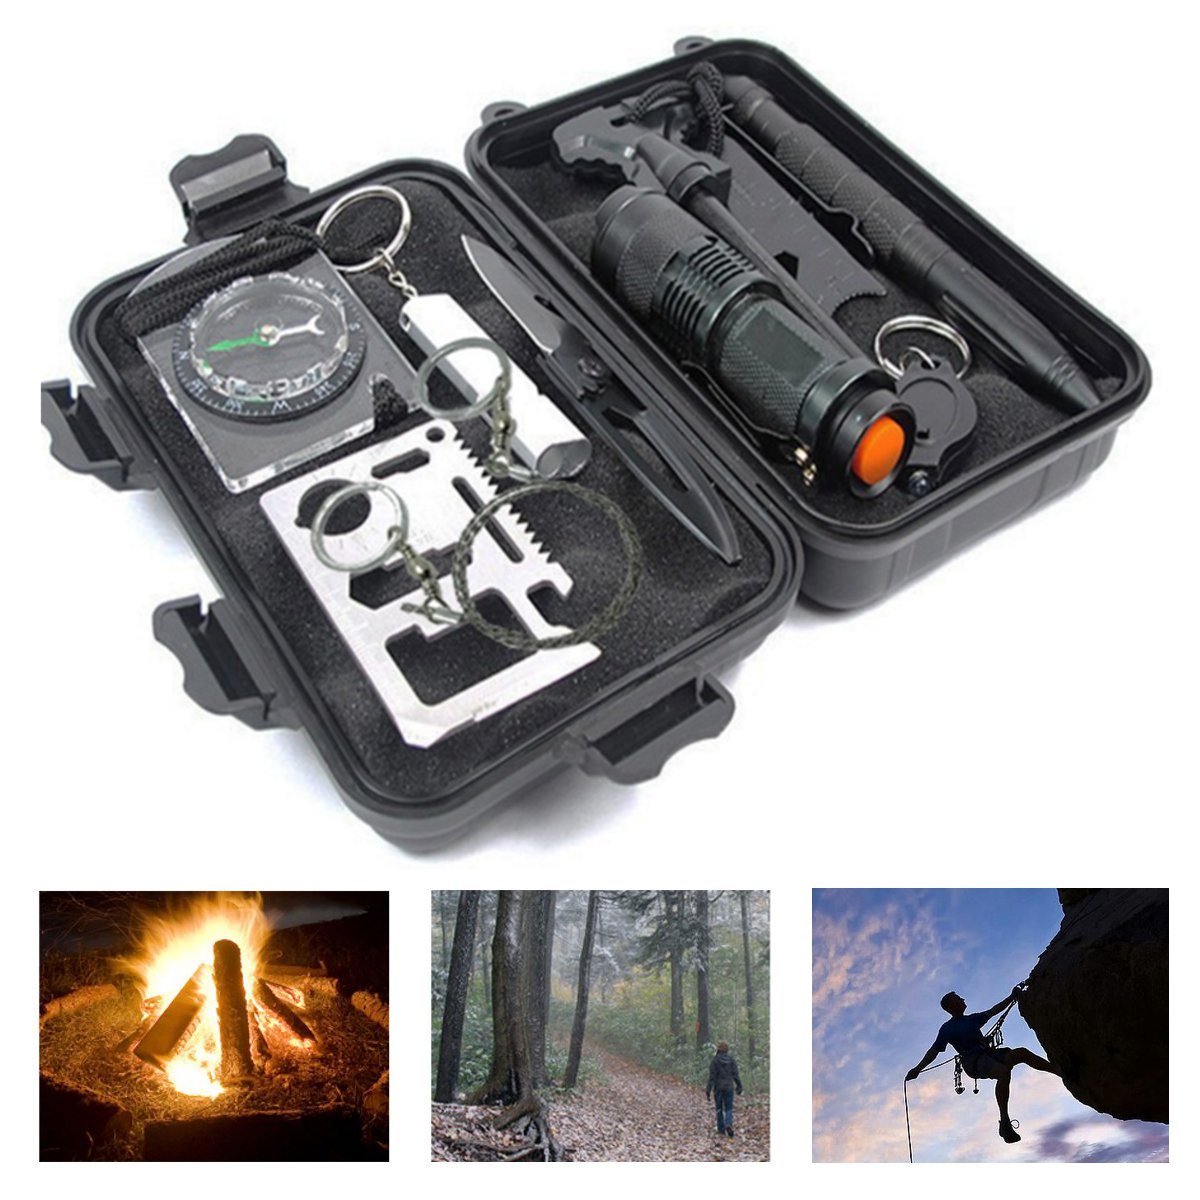 10 in 1 Emergency Survival Kit Outdoor Gear Tool SOS Box Tactical Hiking Camping by